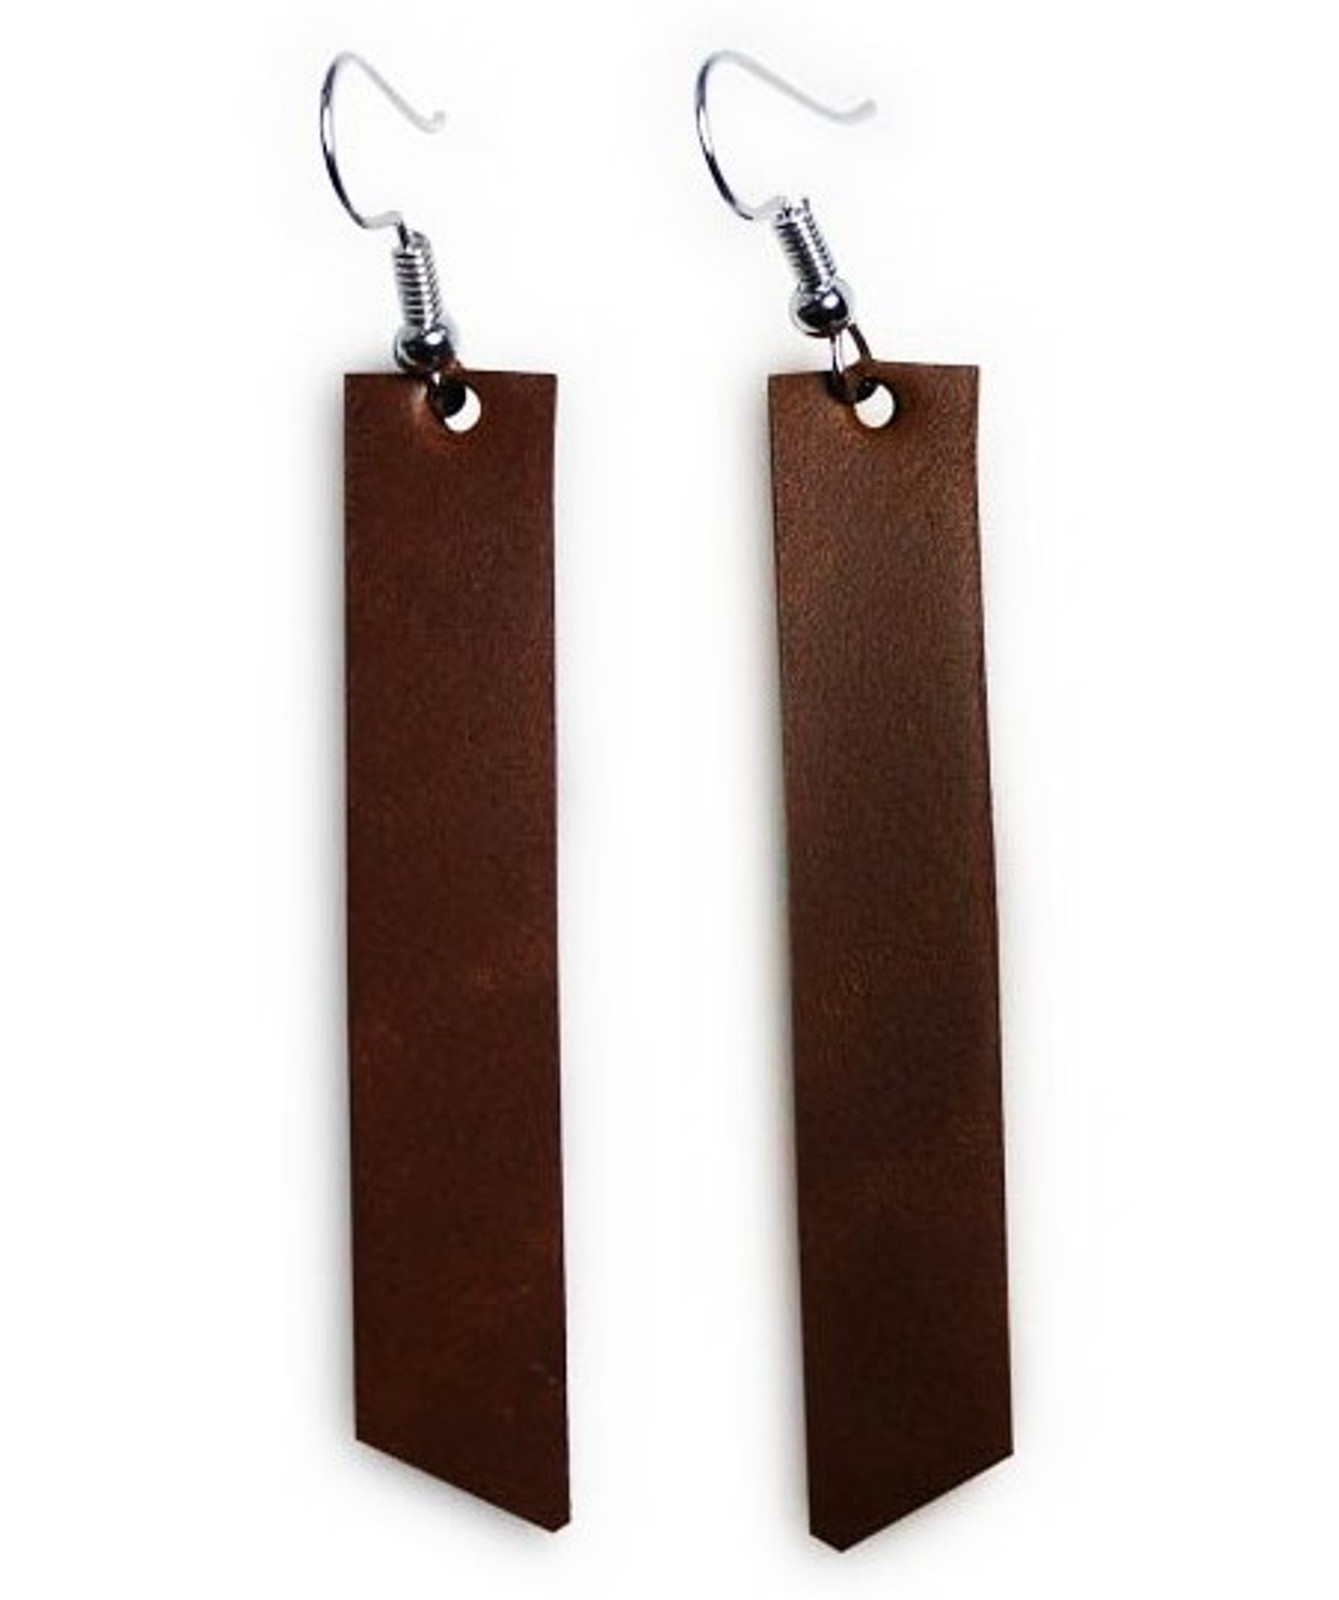 Chestnut leather bar earrings, premium leather, sterling silver, nickel free hardware, leather accessories, leather jewelry, gifts for women